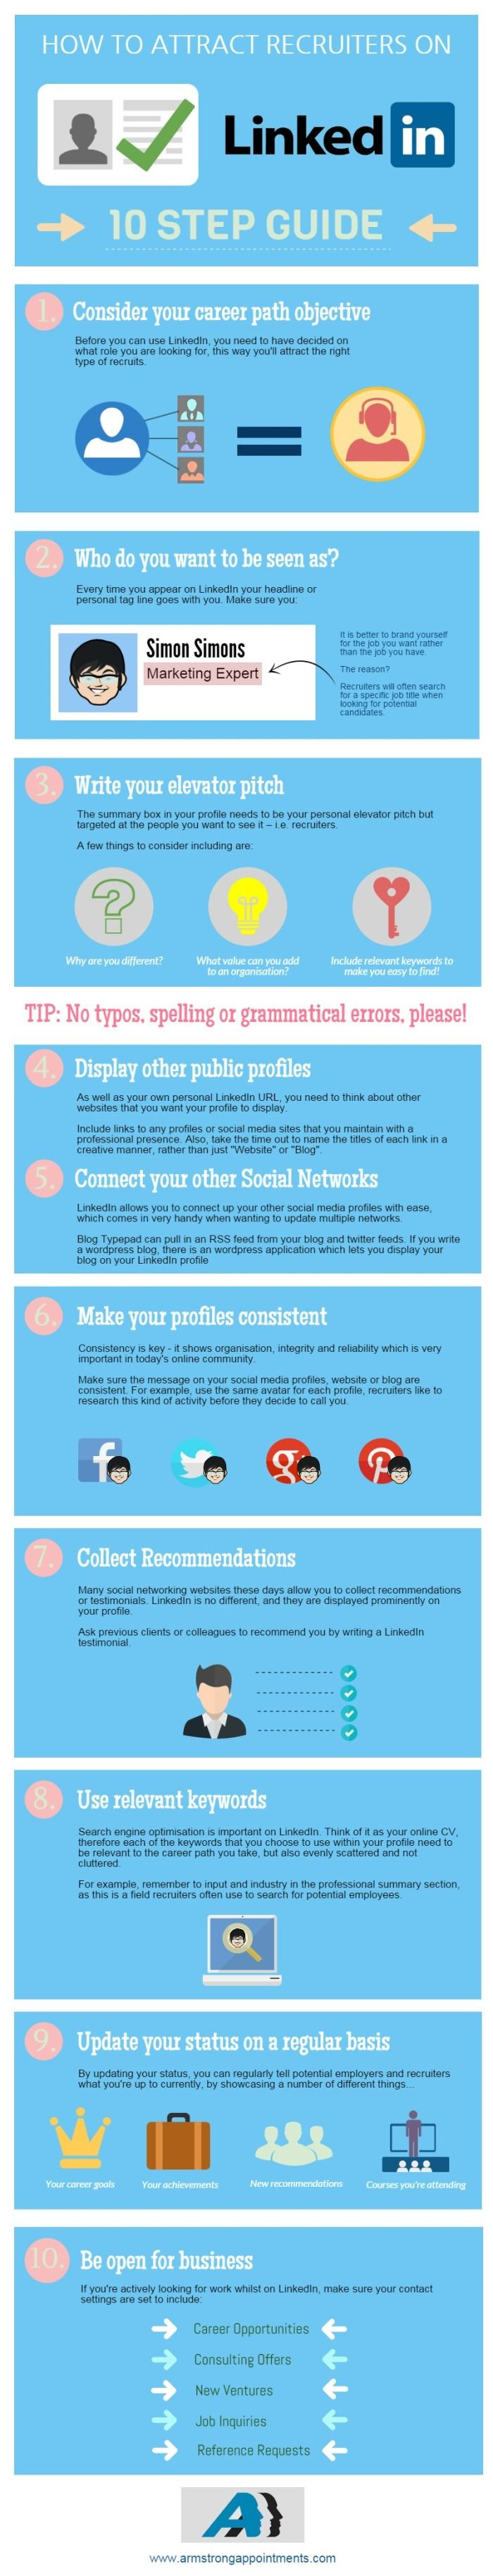 17 best images about job seekers interview how to attract recruiters on linkedin